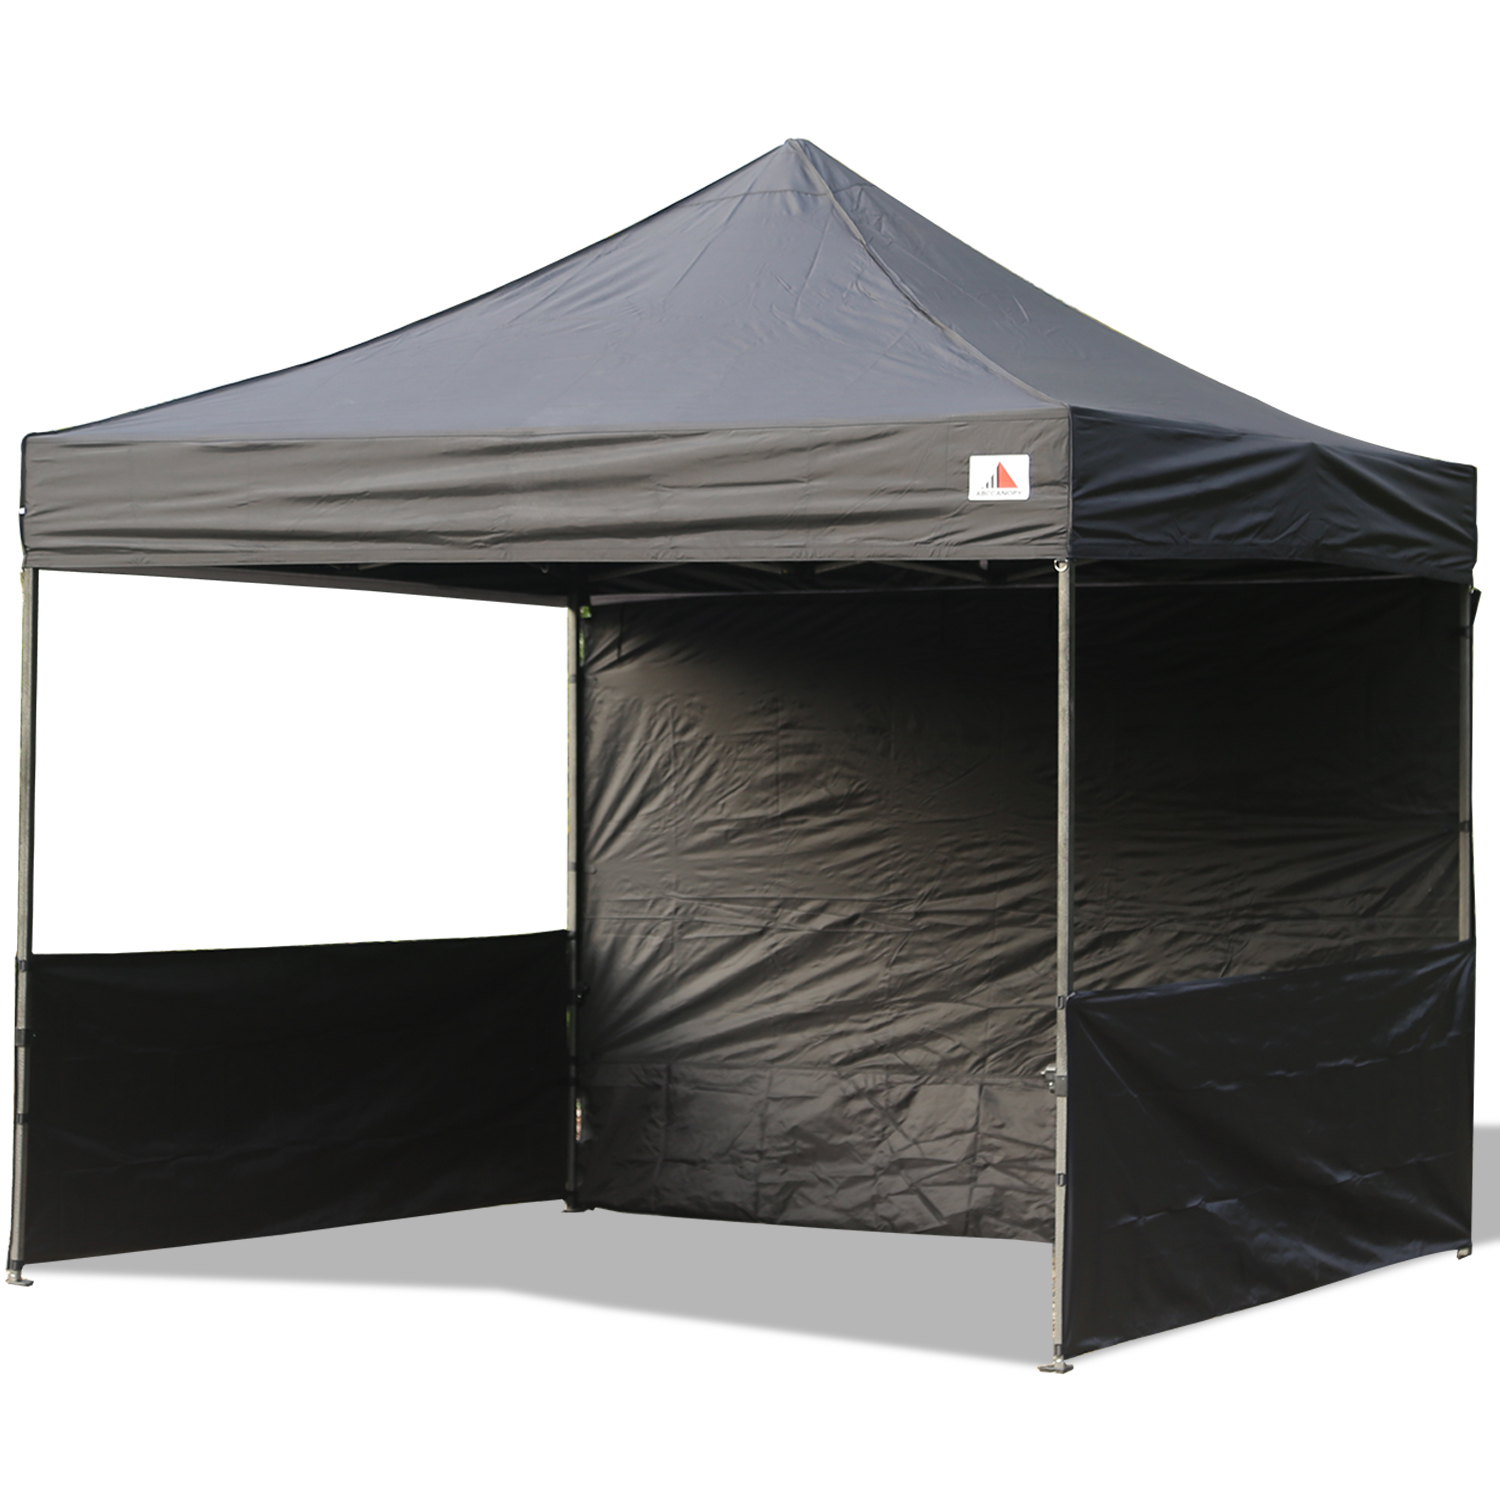 Abccanopy 10x10 deluxe black pop up canopy trade show both for 10x10 craft show tent